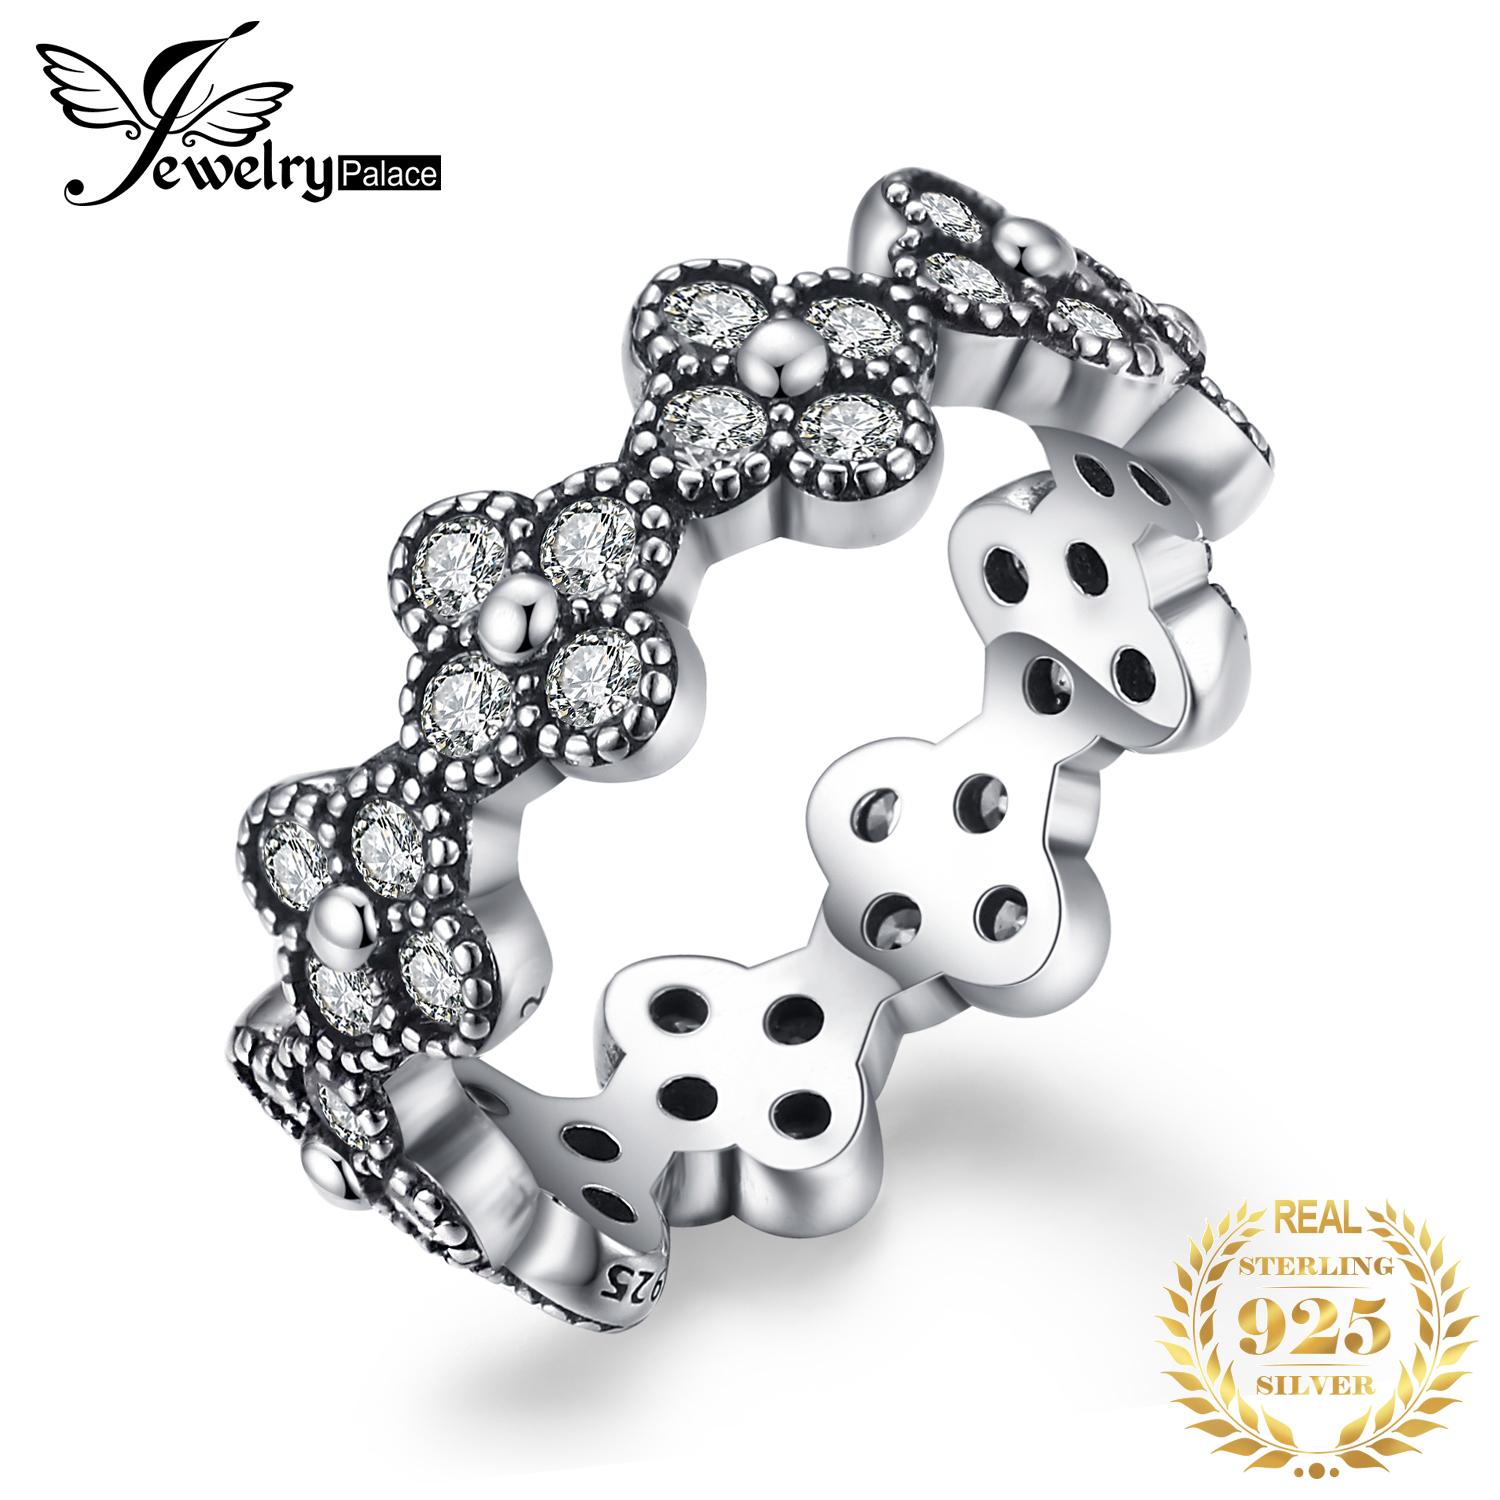 Jewelrypalace Glitter Flora Silver Ring 925 Sterling Silver  Gifts For Women Girlfriend Anniversary Fashion Jewelry New Arrival